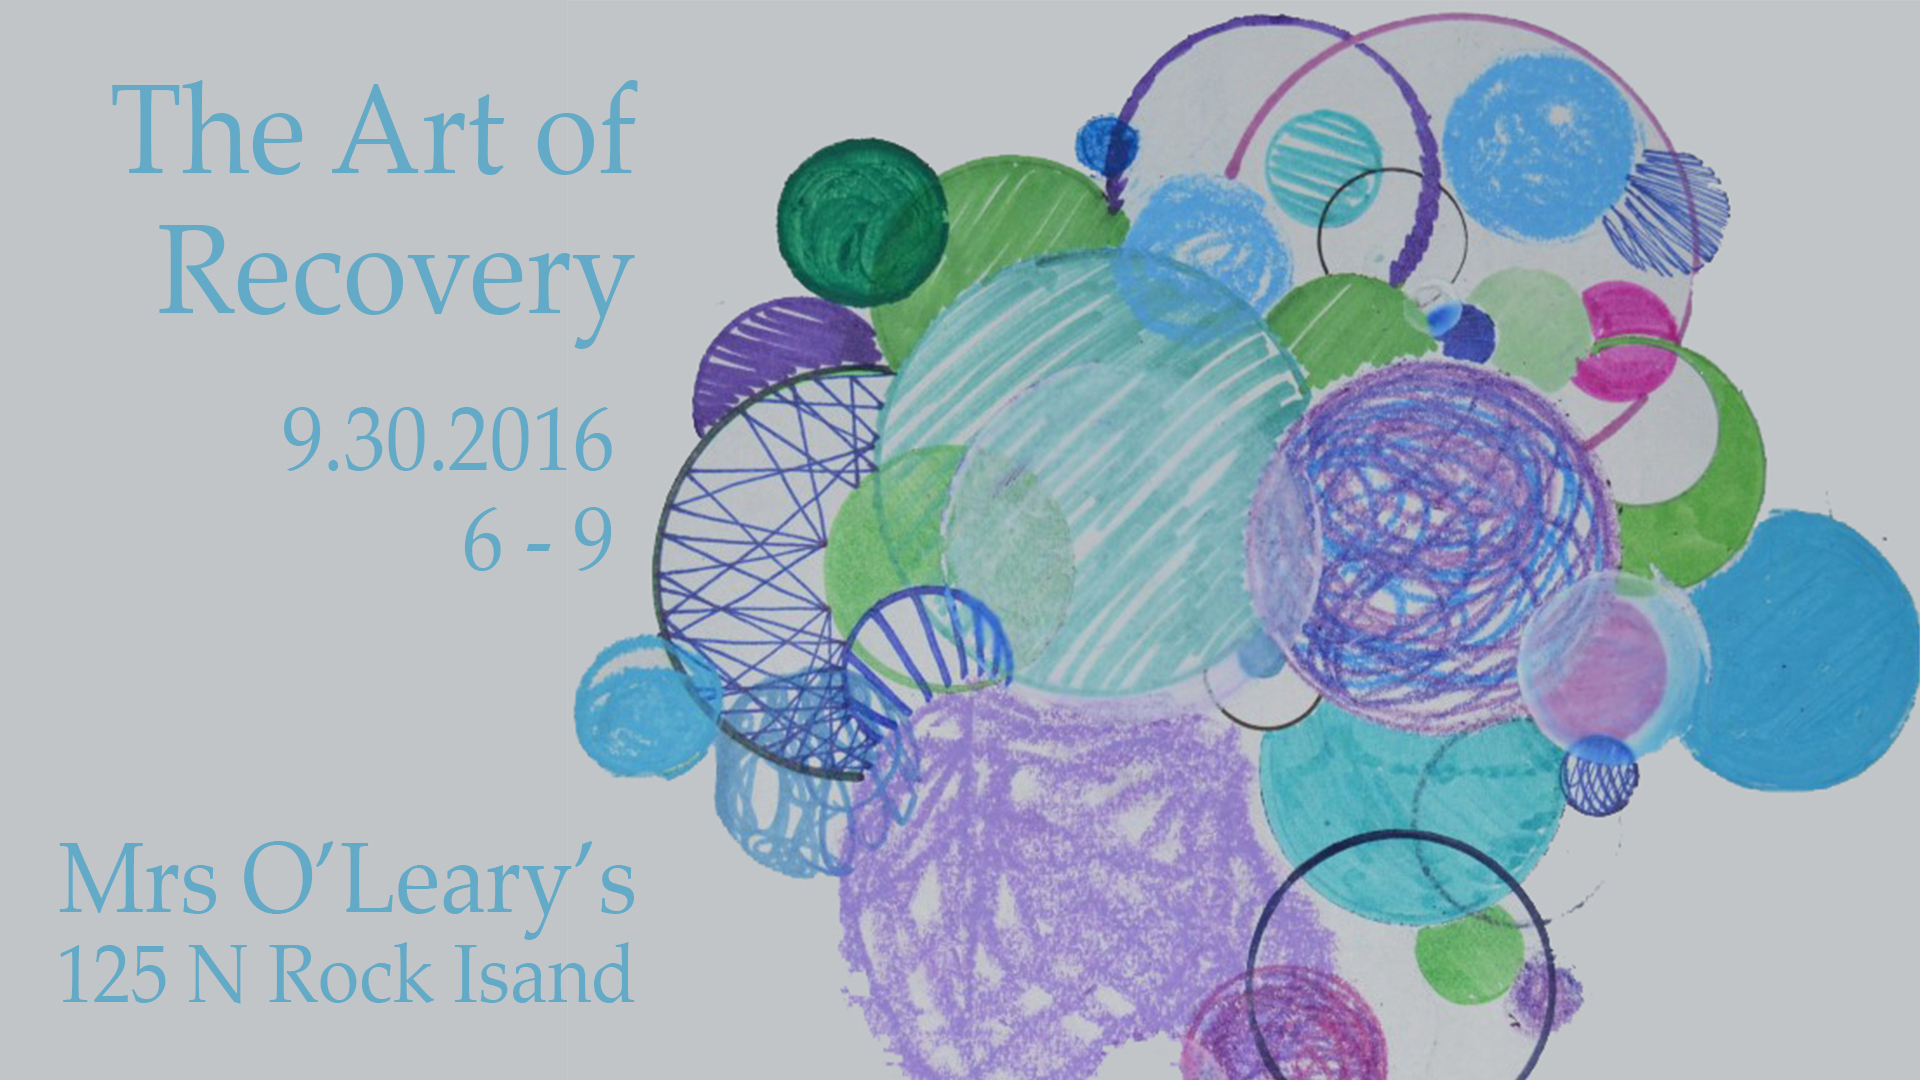 Art of Recovery 2016